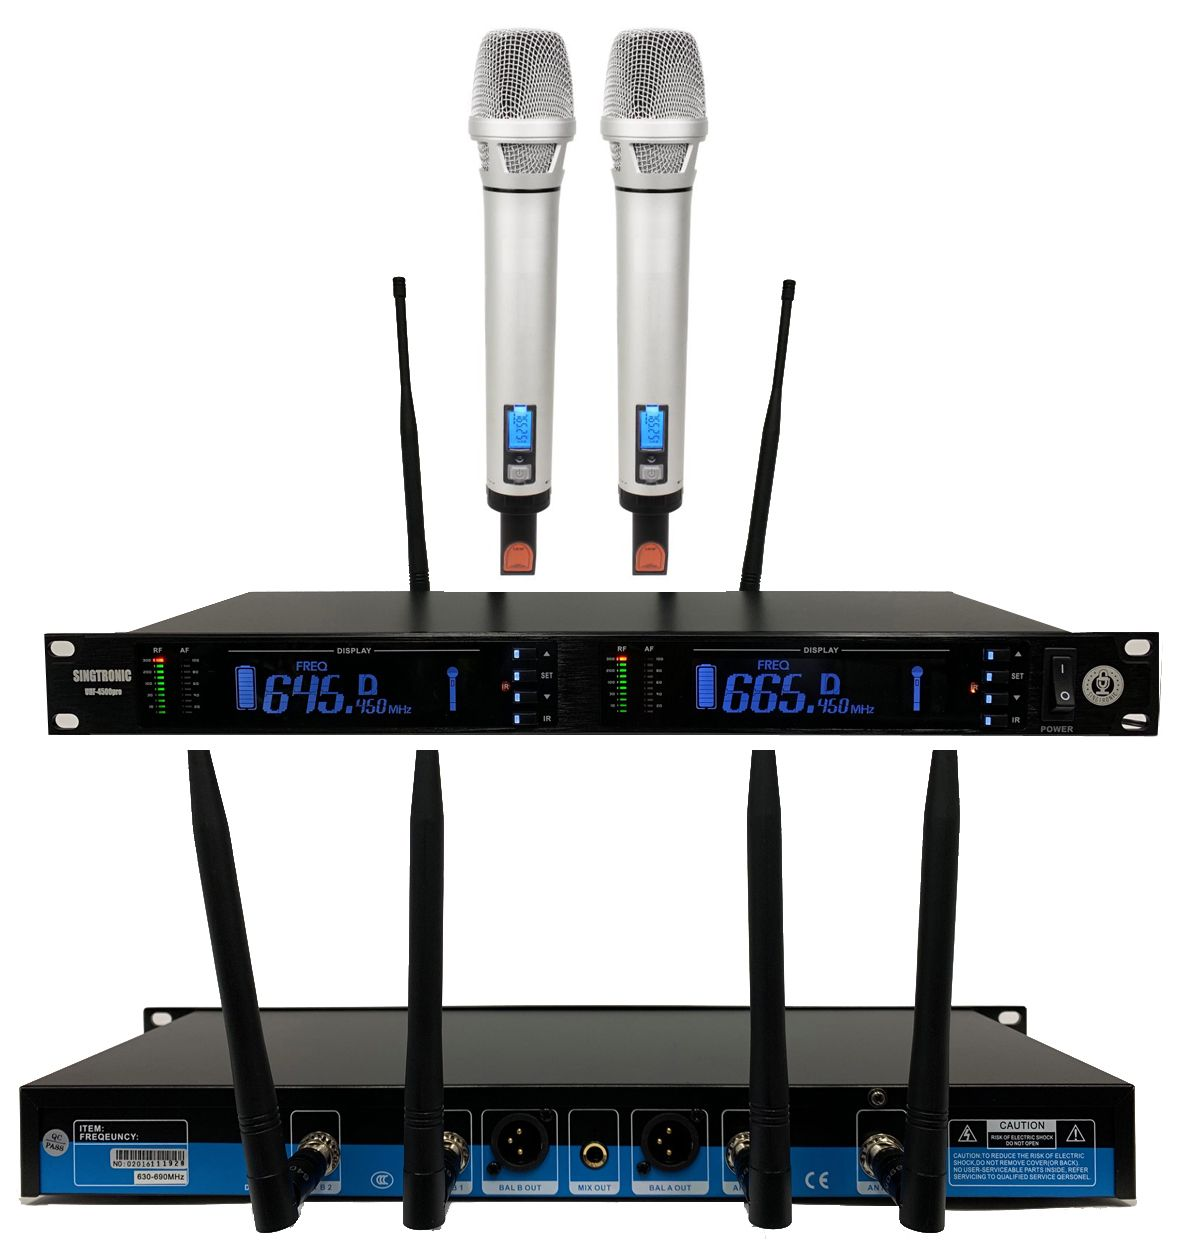 Singtronic Professional Complete 4000W Karaoke System Top of the Line  Newest: 2019 Super Tweeters Monster Bass W/ Wifi & Voice Recording FREE:  80,000